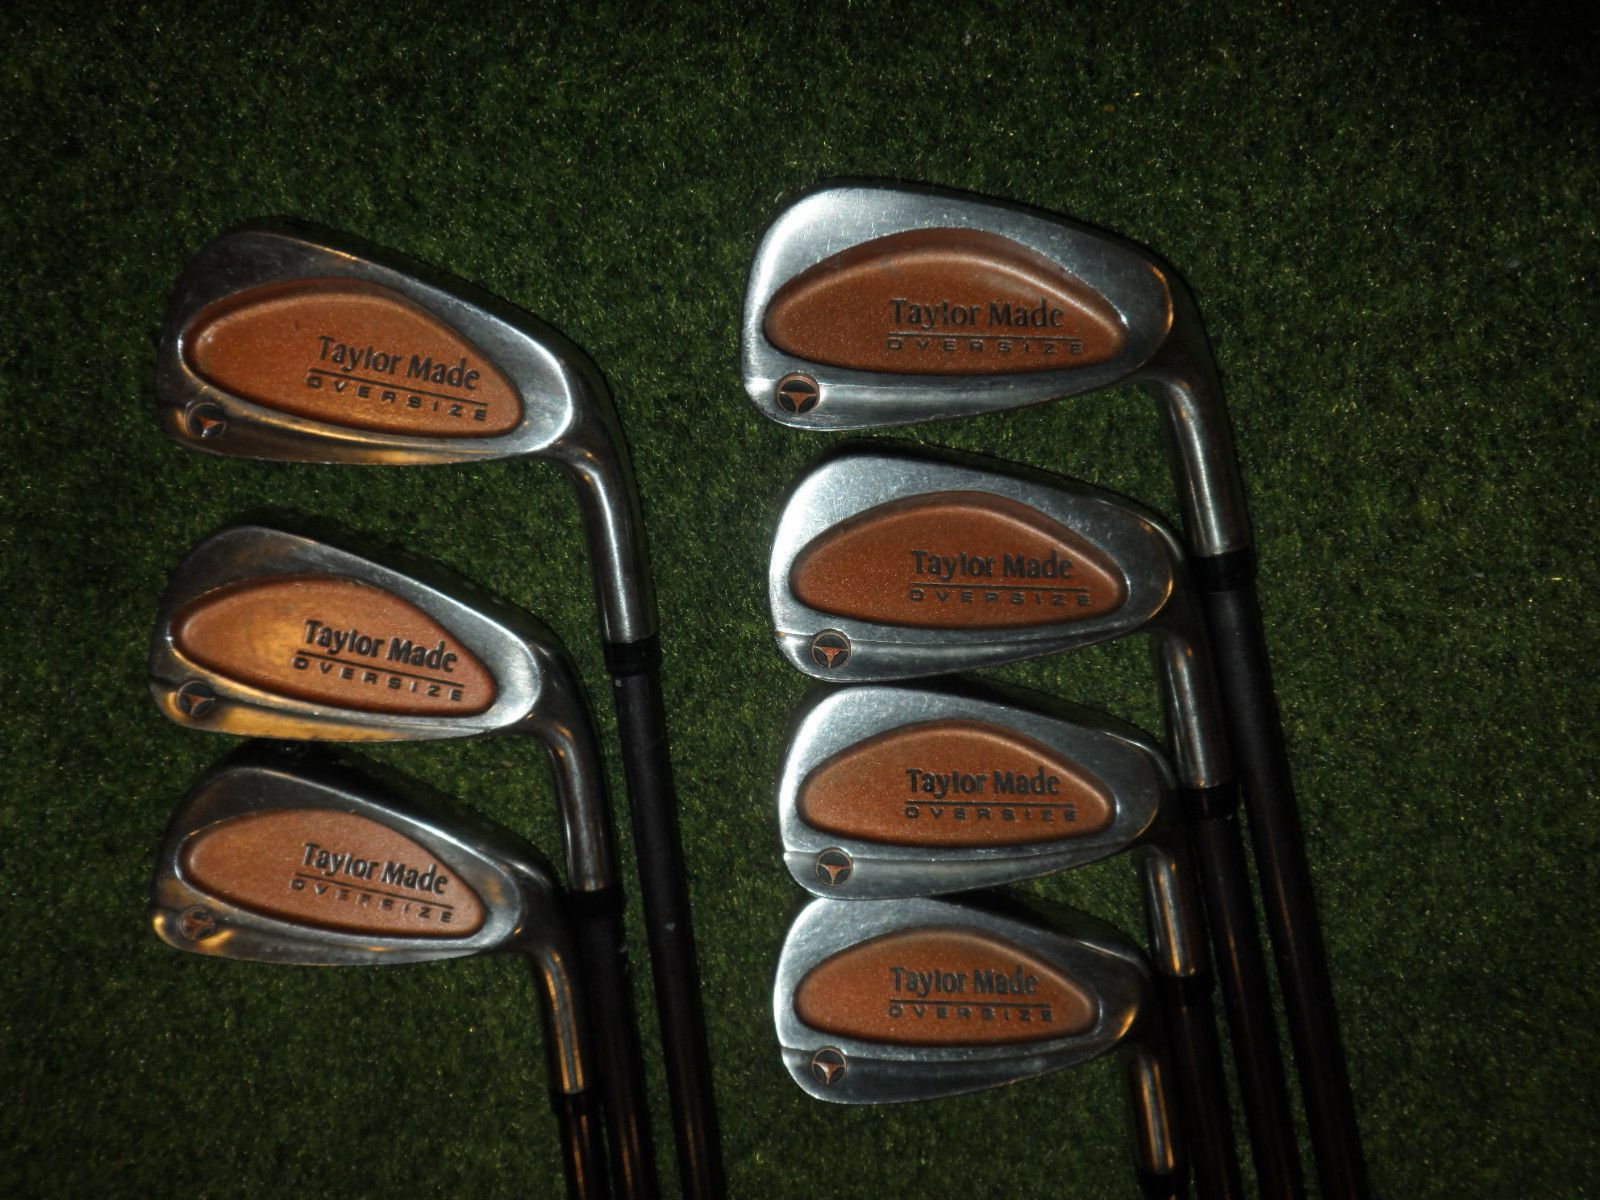 GREAT TAYLORMADE GOLF CLUBS BURNER OVERSIZE IRONS BUBBLE REGULAR PLUS SHAFTS